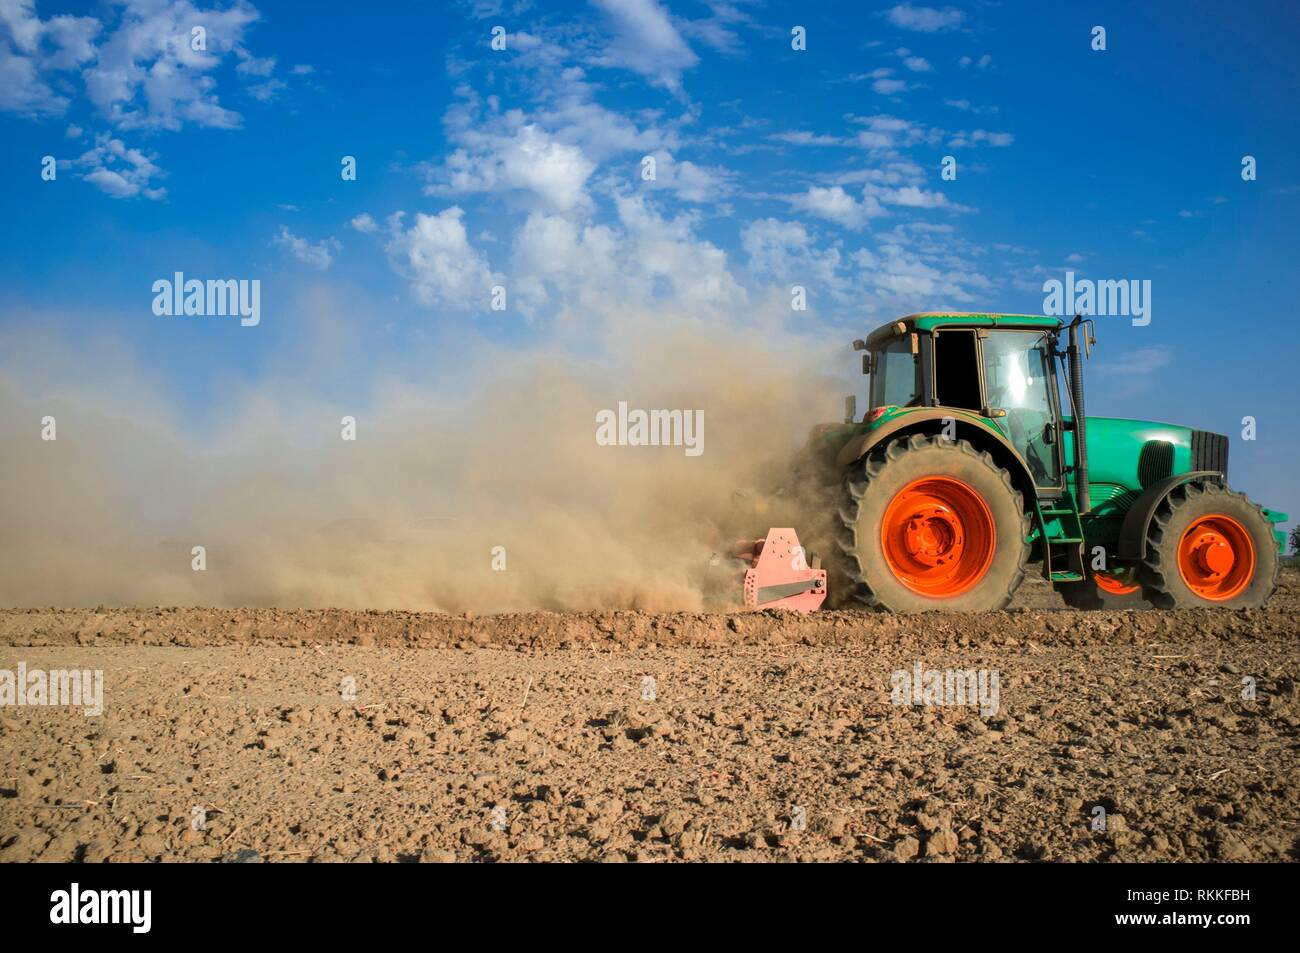 Farm tractor preparing dusty soil affected by drought. Drought and agriculture concept. Spain. - Stock Image